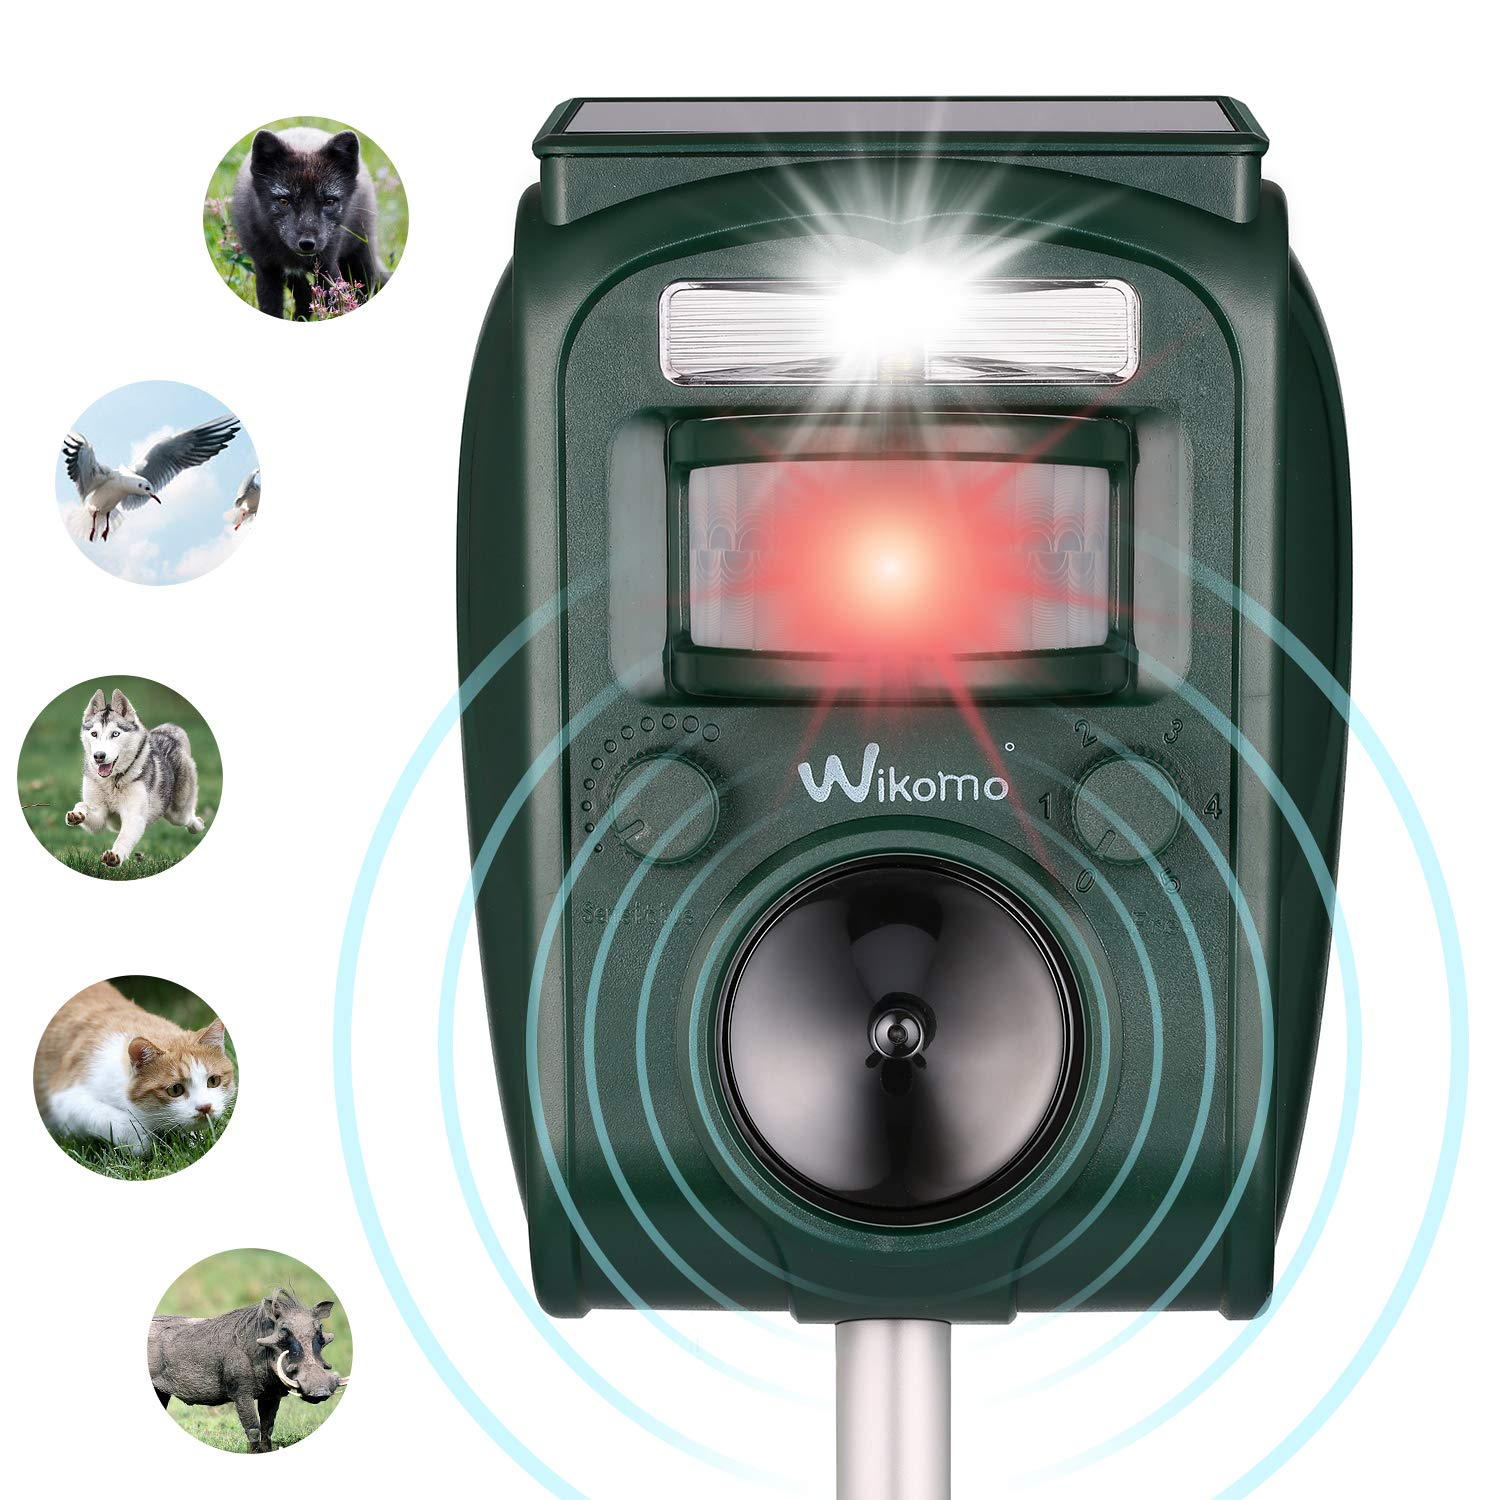 Solar Animal Repeller Ultrasonic Pest Control Repellent PIR Sensor Alarm with Ultrasonic Sound, Motion Sensor and Flashing Light Repellent for Cats, Dogs, Squirrels, Moles, Rats and Wild Animals …